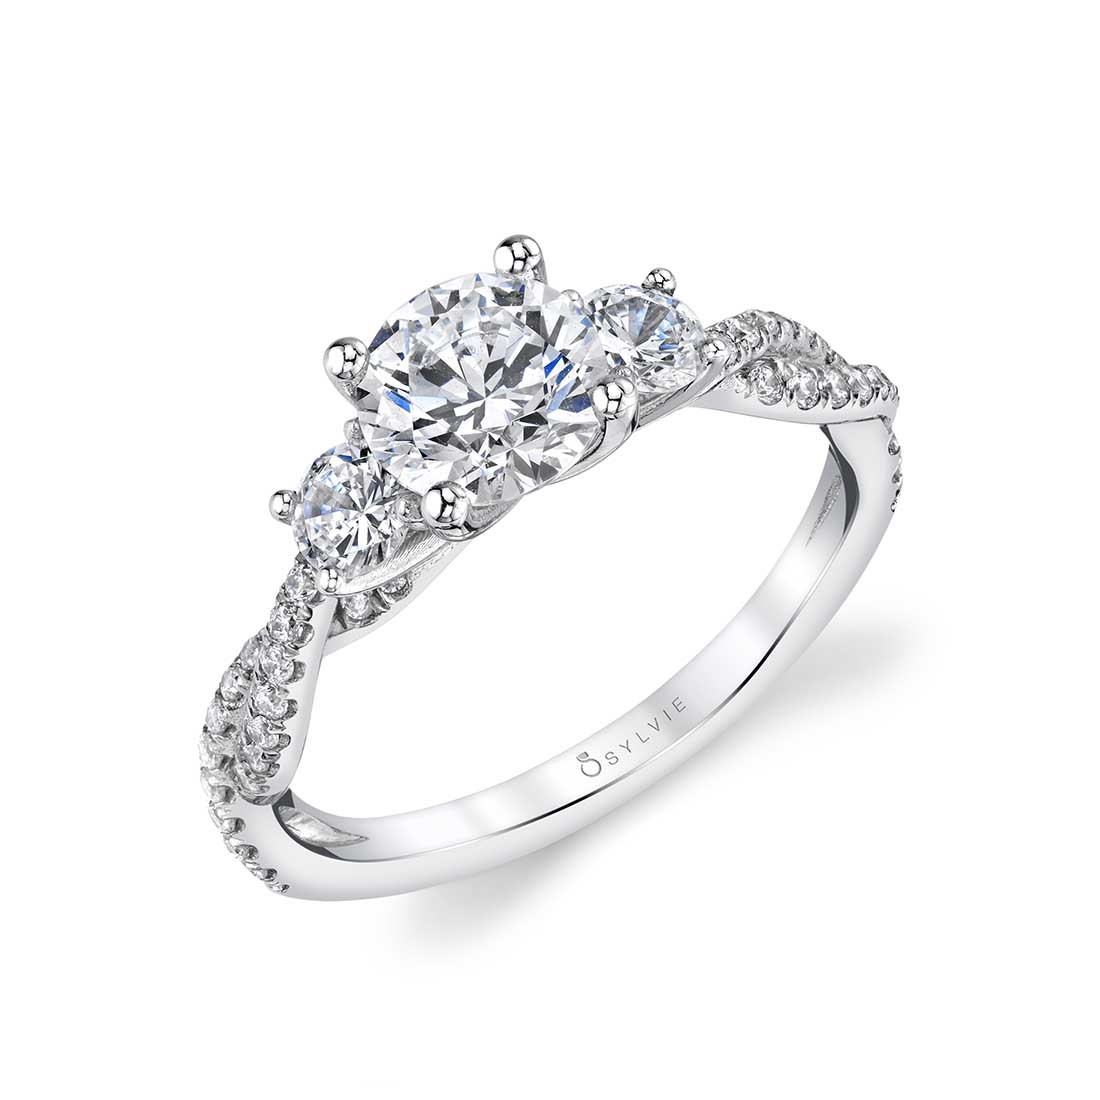 3 Stone Engagement Ring in White Gold - Gina - Sylvie